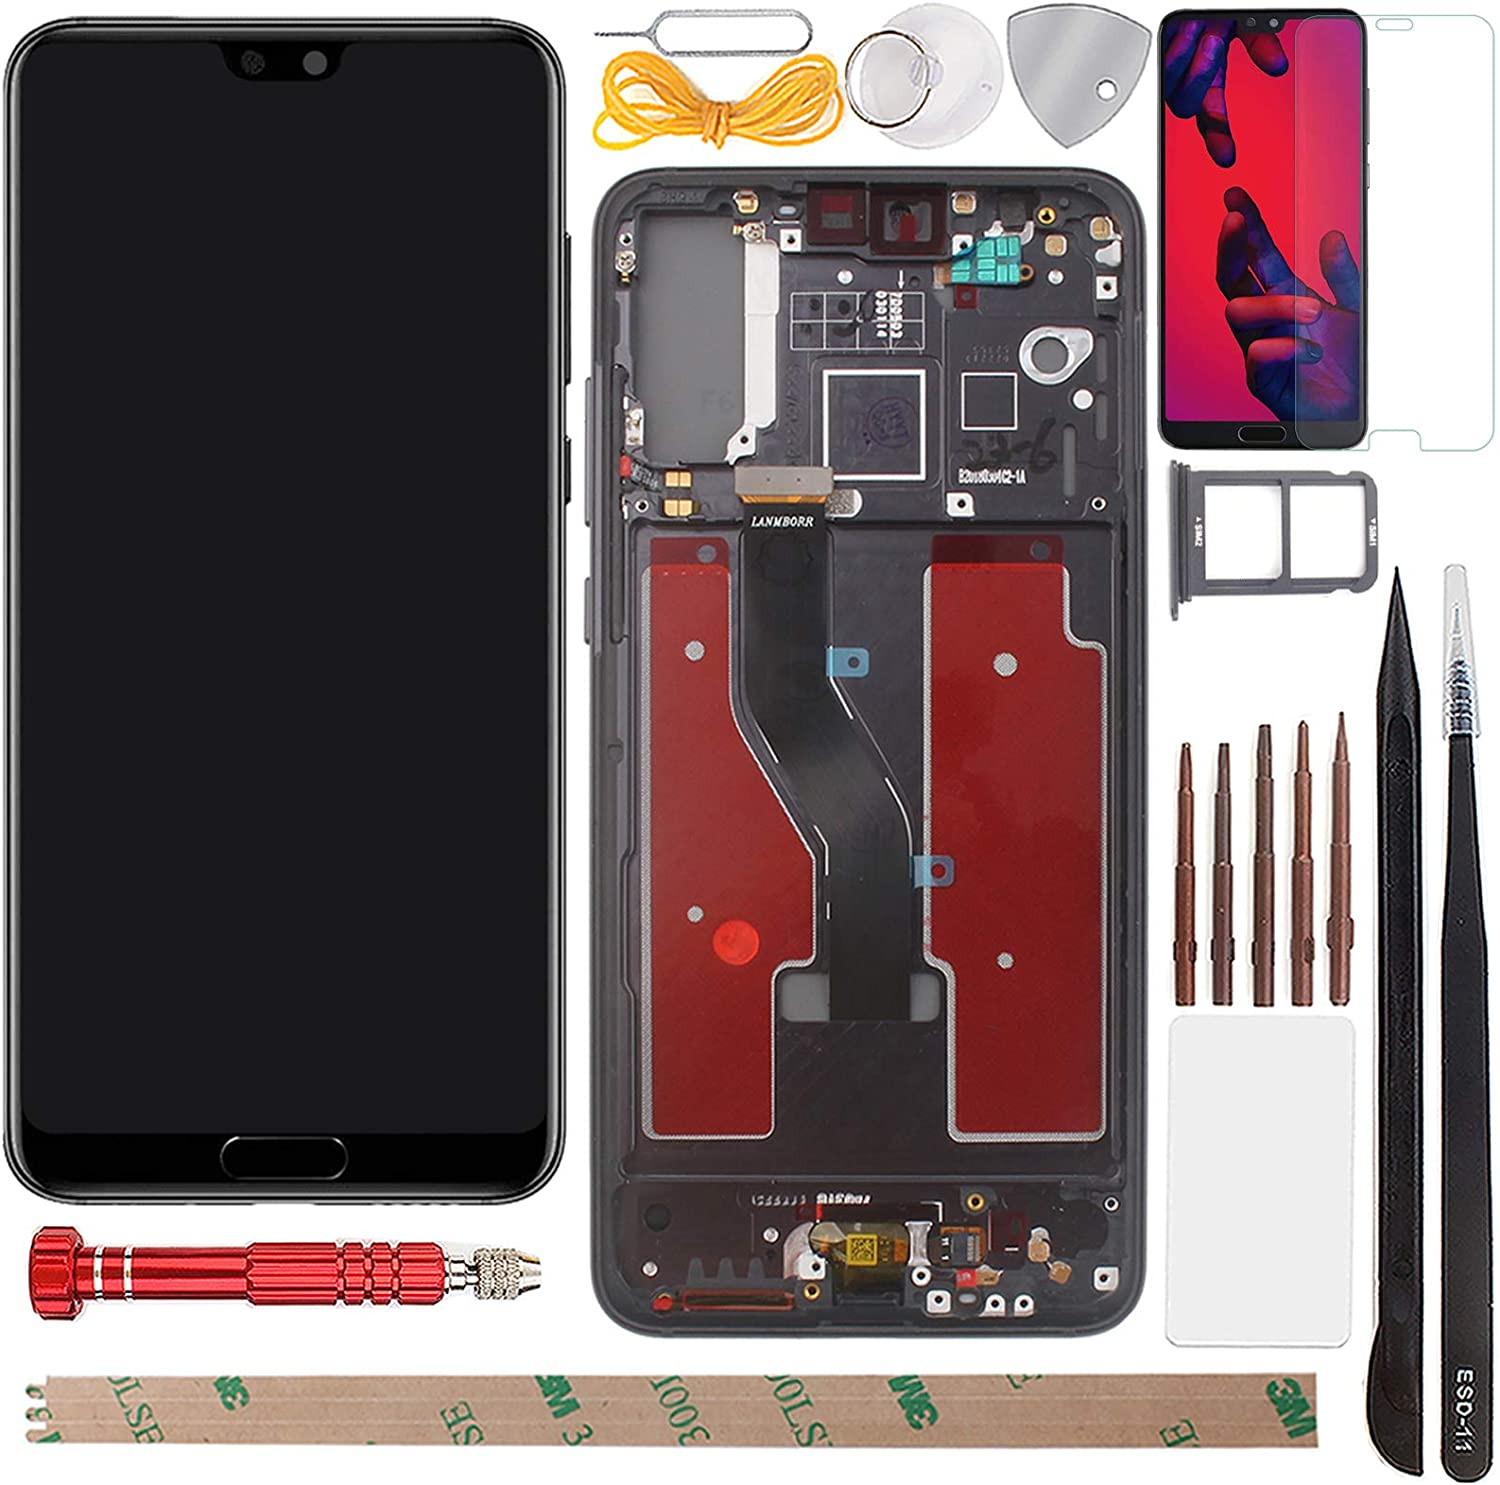 YHX-US Screen Replacement LCD Display Touch Screen Digitizer Assembly with 1 Piece Screen Protector&SIM Card Tray Suitable for Huawei P20 Pro CLT-L09 CLT-L29 CLT-AL00 CLT-AL01 2018 6.10